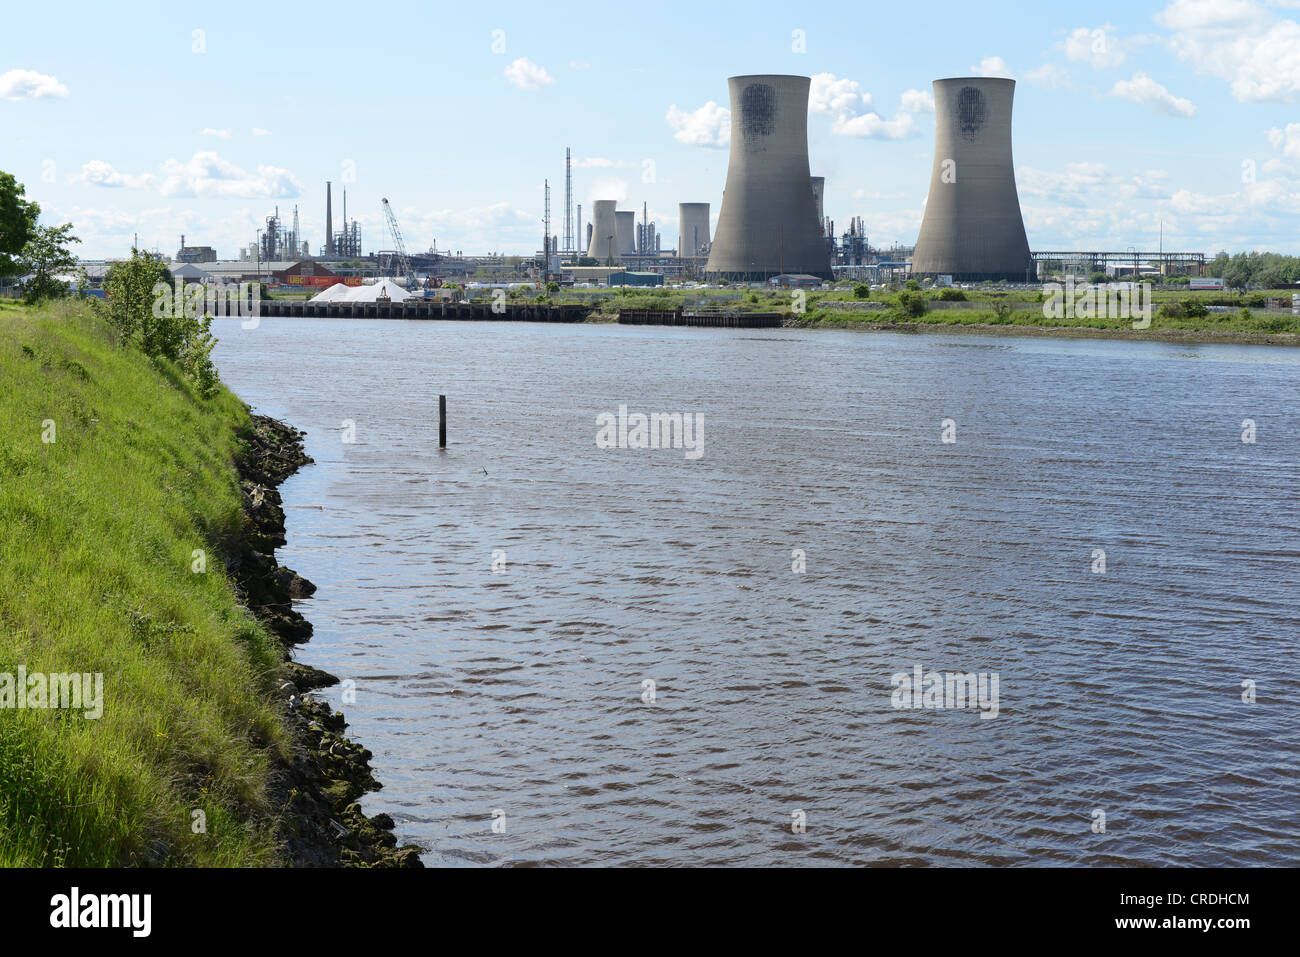 Cooling towers on the Billingham chemical works, Cleveland. Taken on a bright sunny day - Stock Image